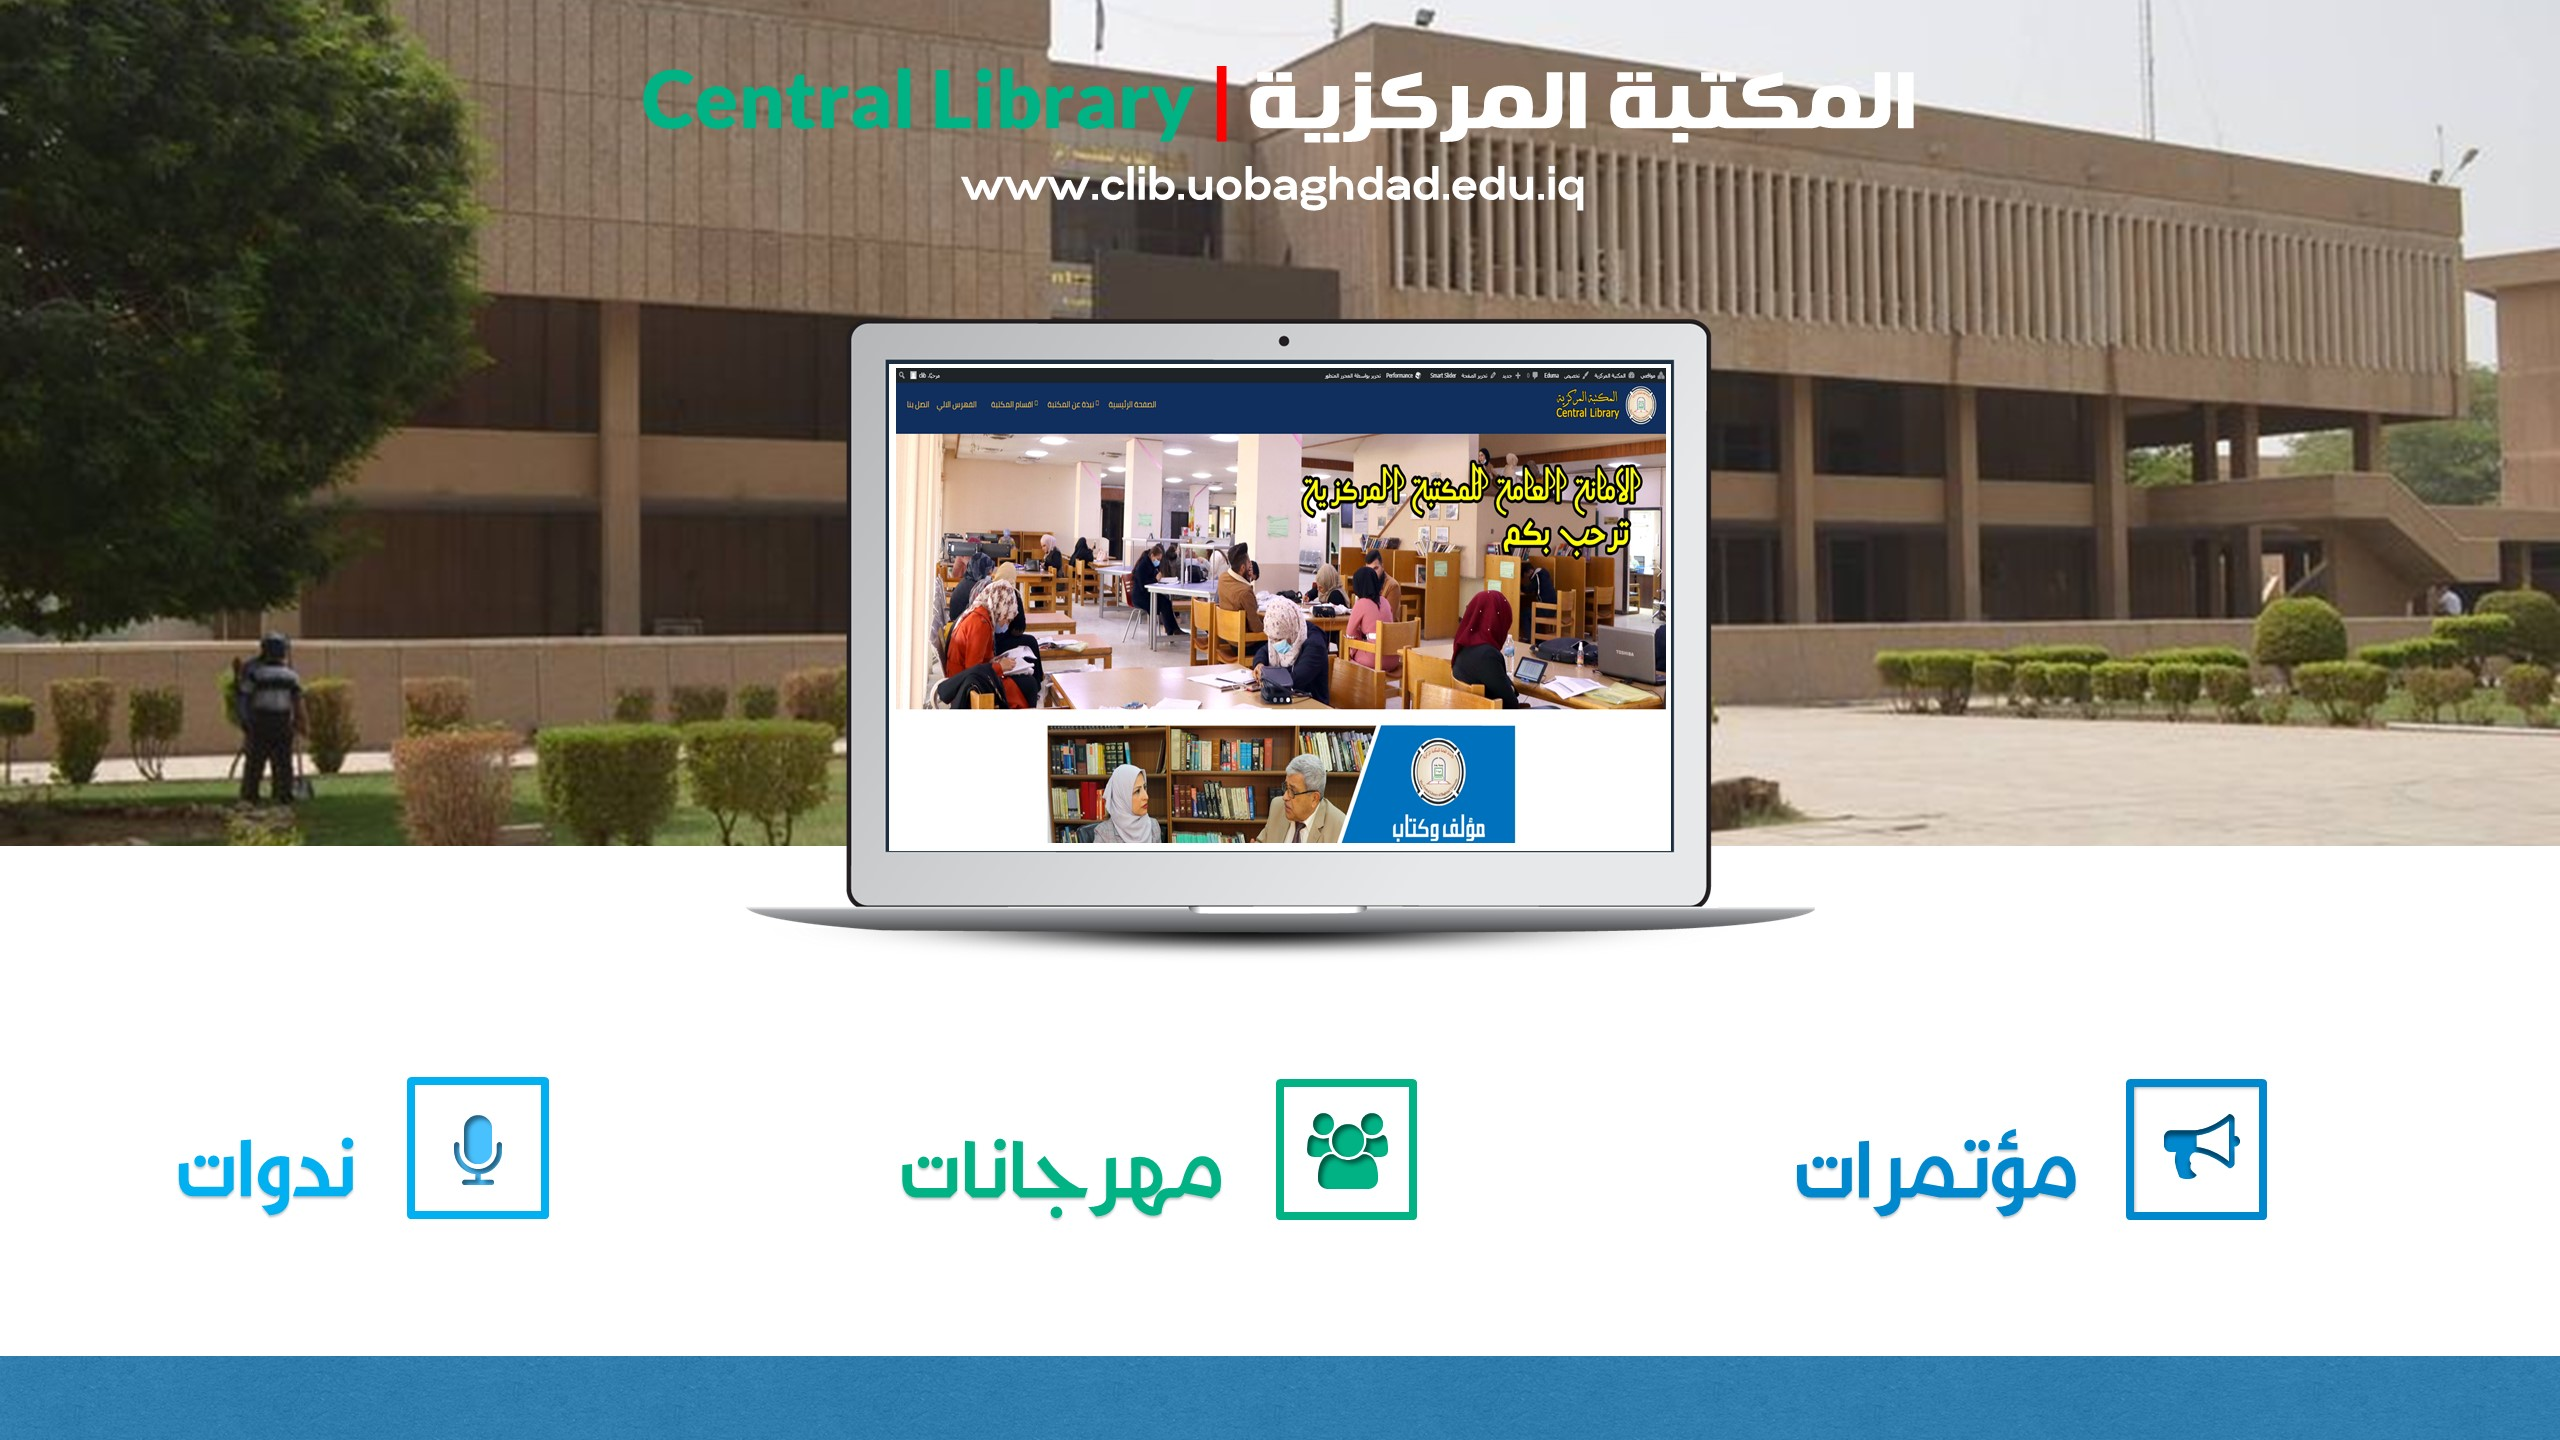 conference , مؤتمرات